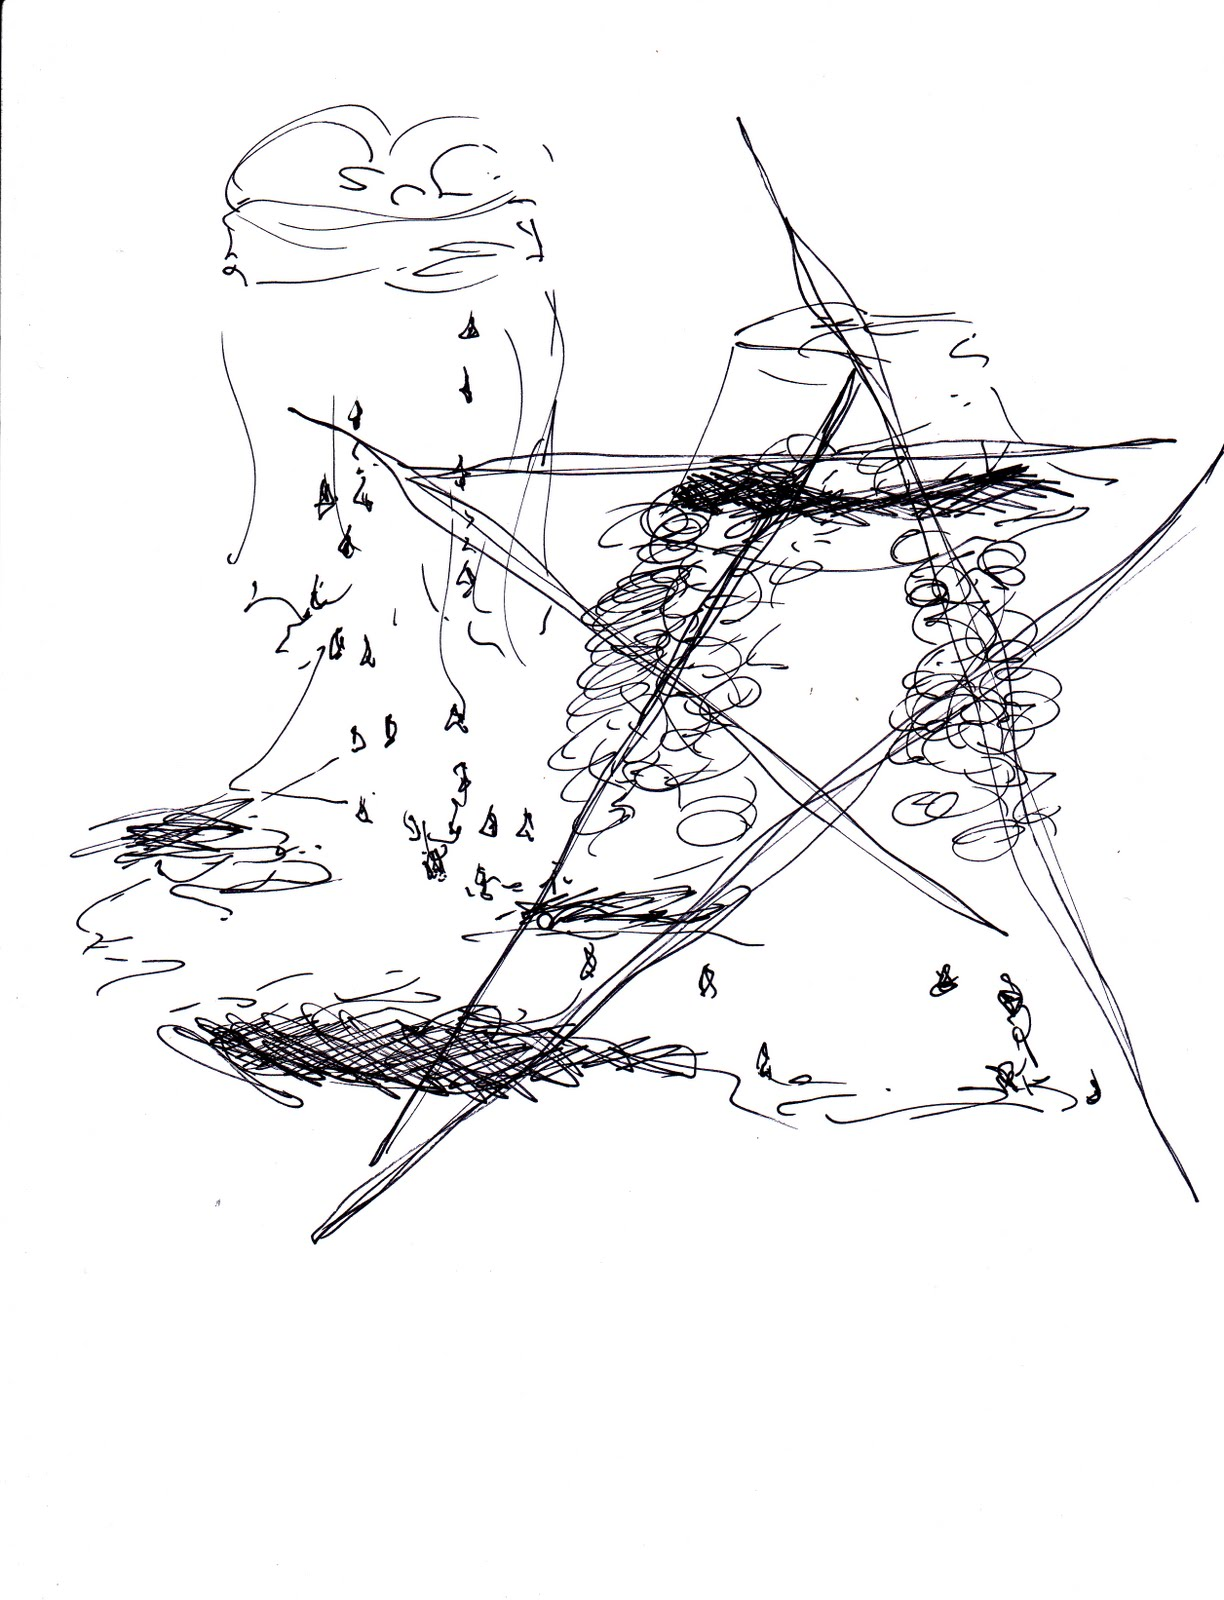 ...or sew you think: drawings about patti smith and her book